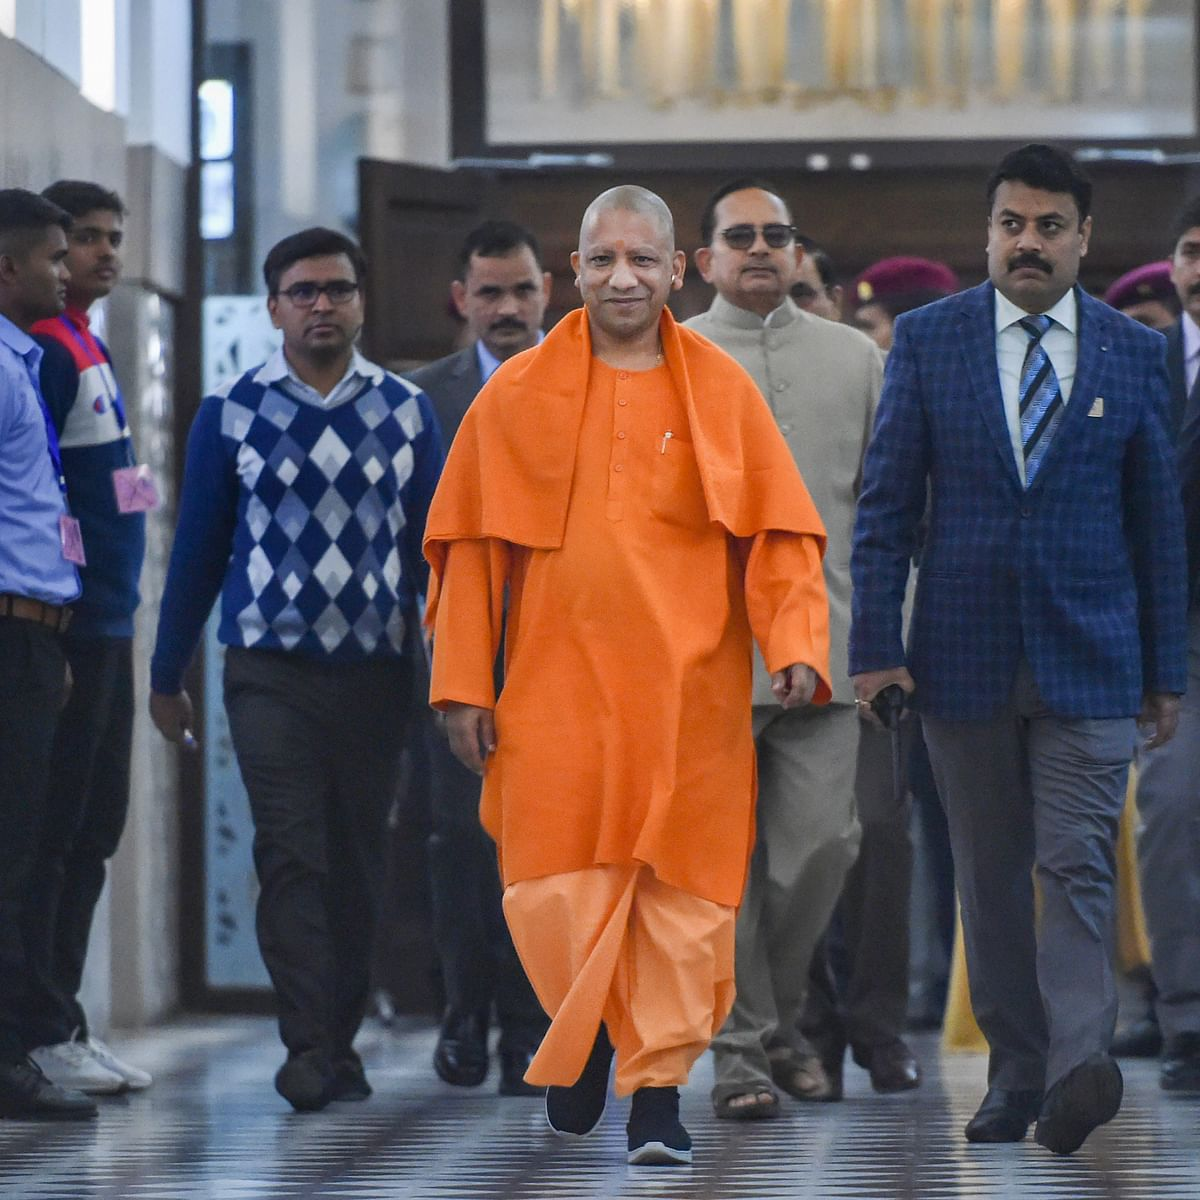 UP CM Yogi Adityanath unveils new population policy, says in increasing population a 'hurdle in development'